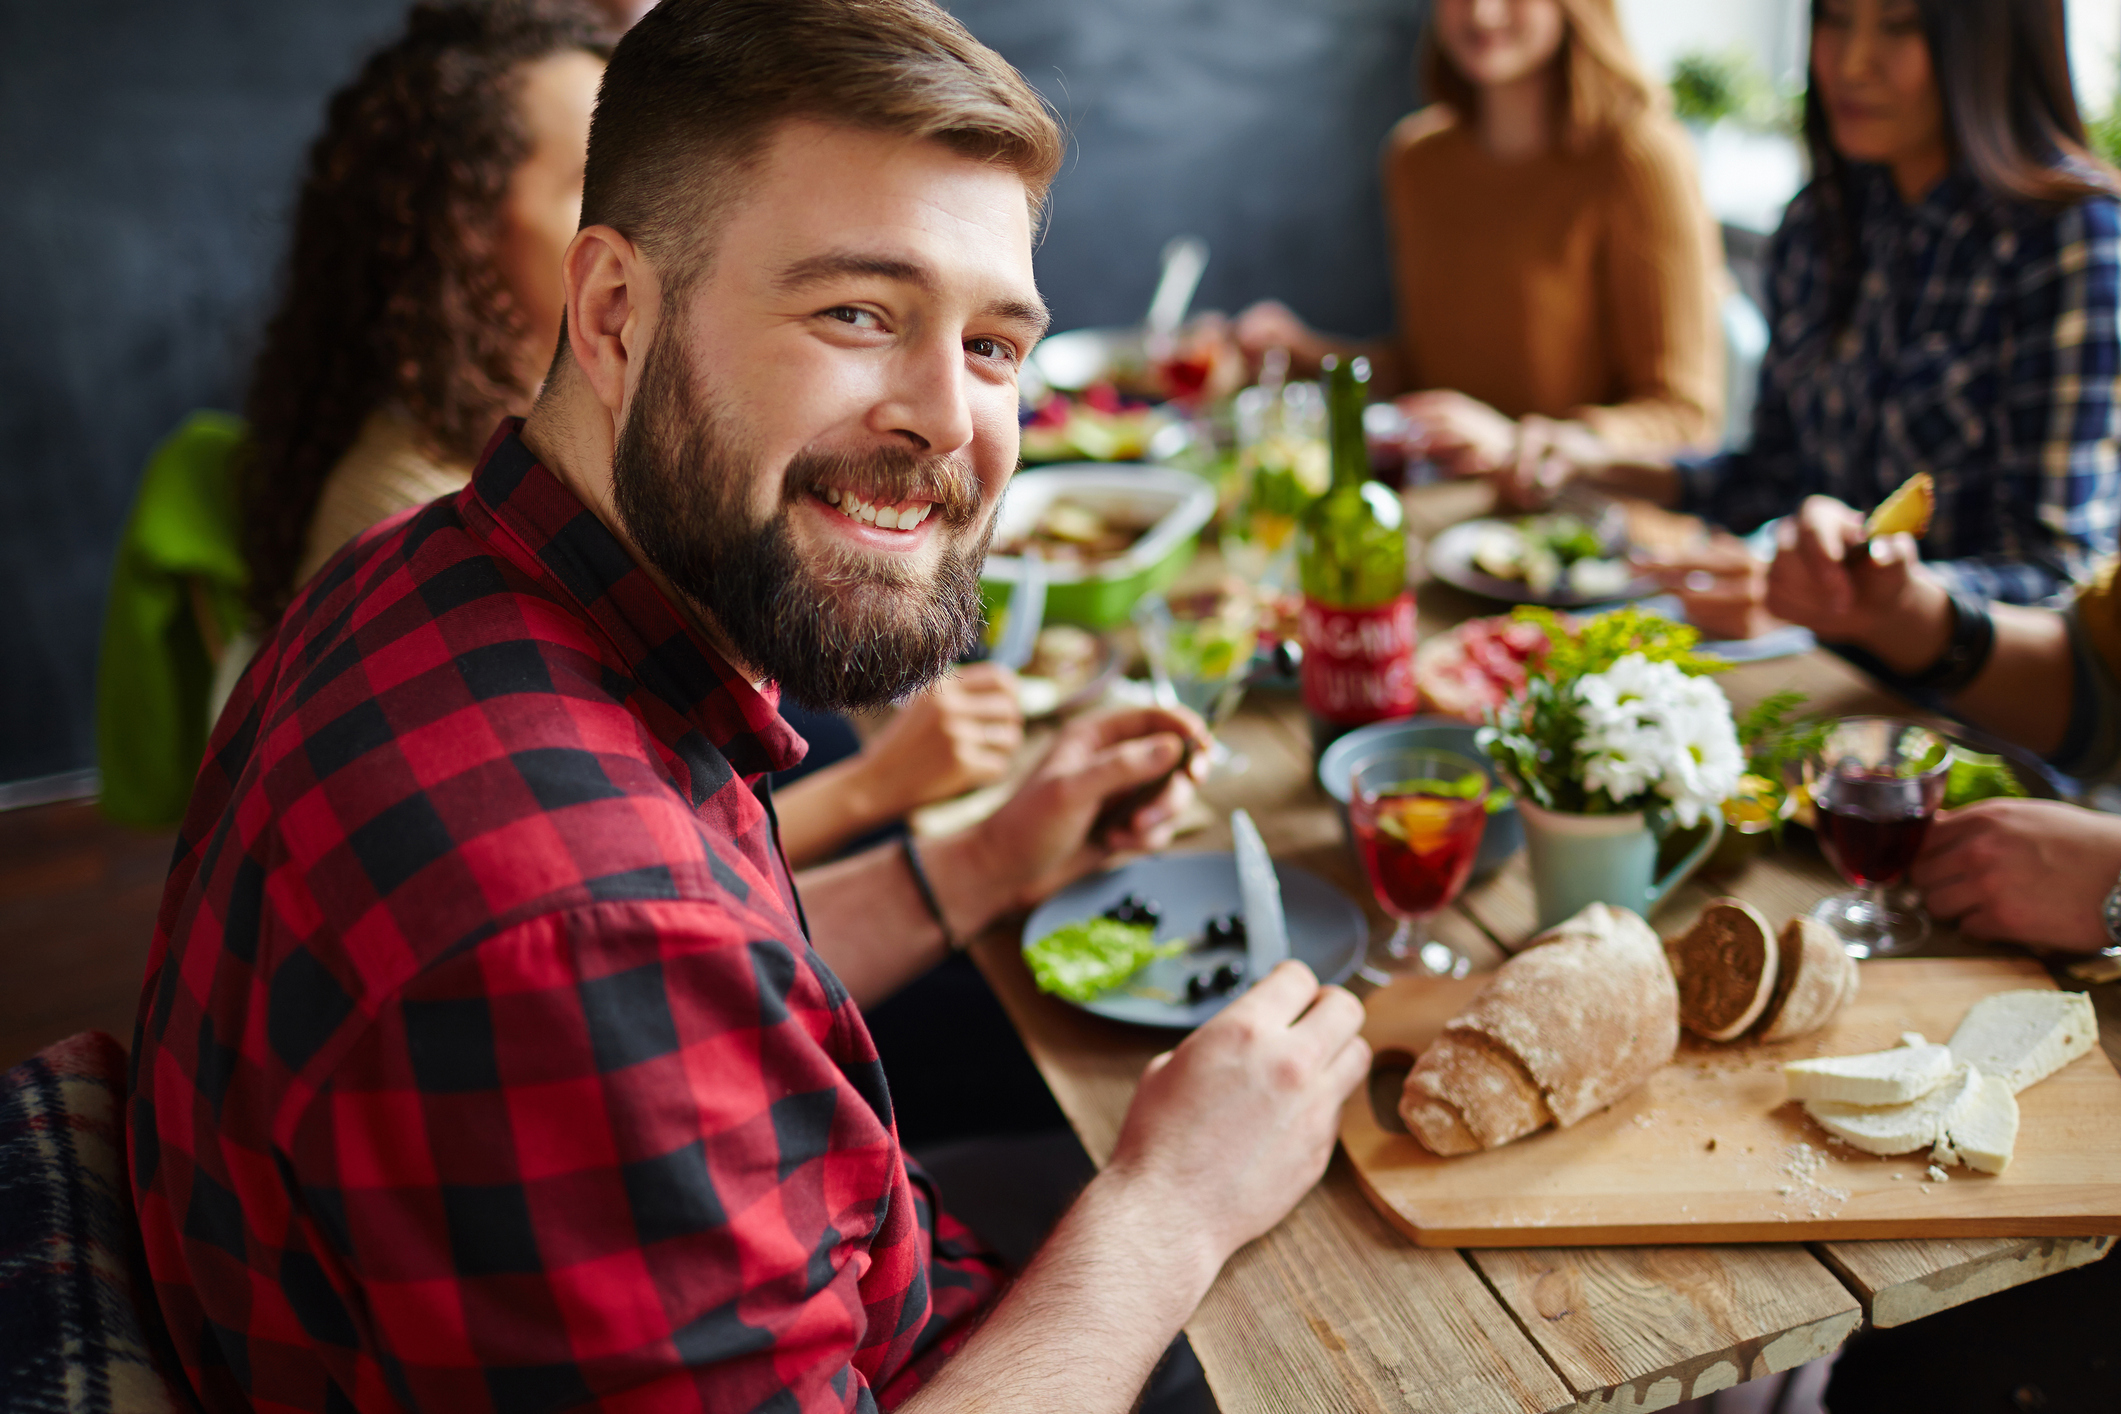 Young man sitting at dinner table with his friends and smiling at camera (Thinkstock/PA)